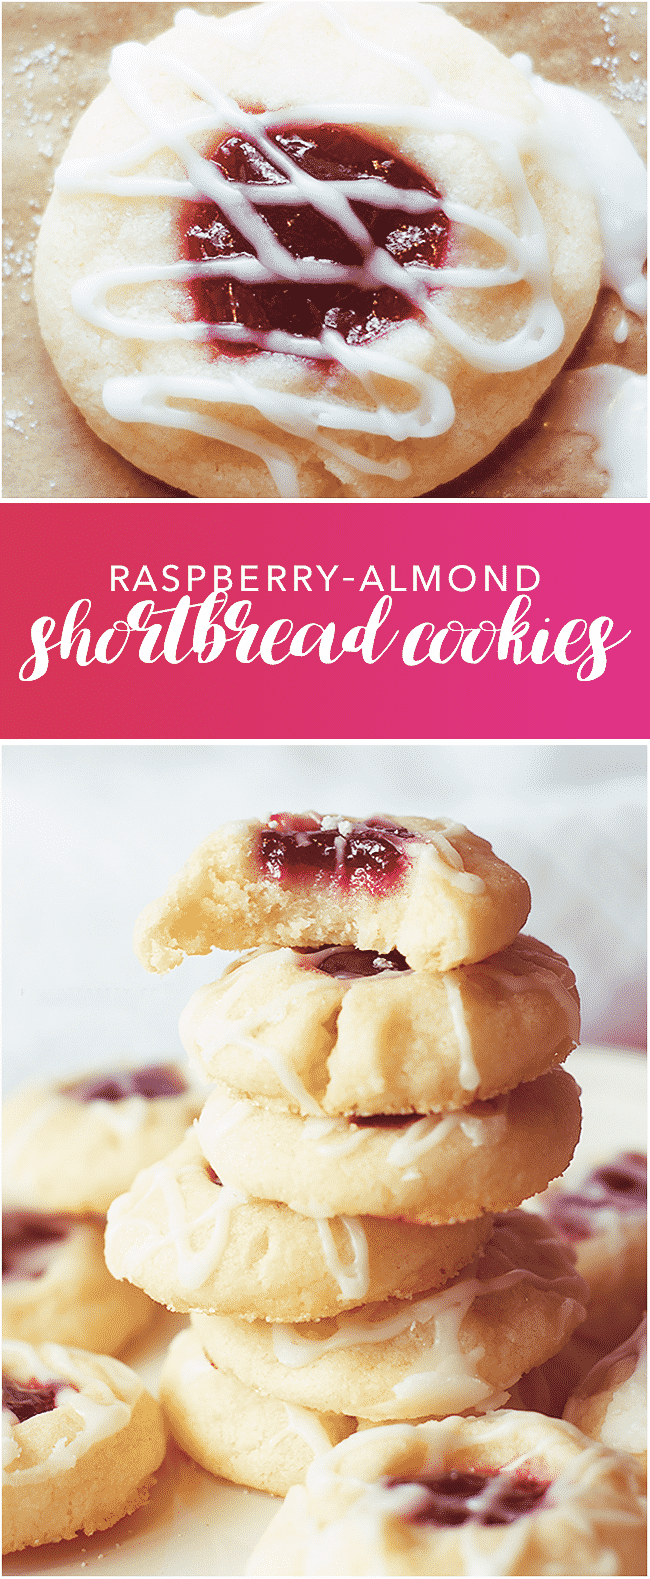 Raspberry Almond Shortbread Cookies - I just made these, they are by far the BEST holiday cookie recipe on Pinterest!